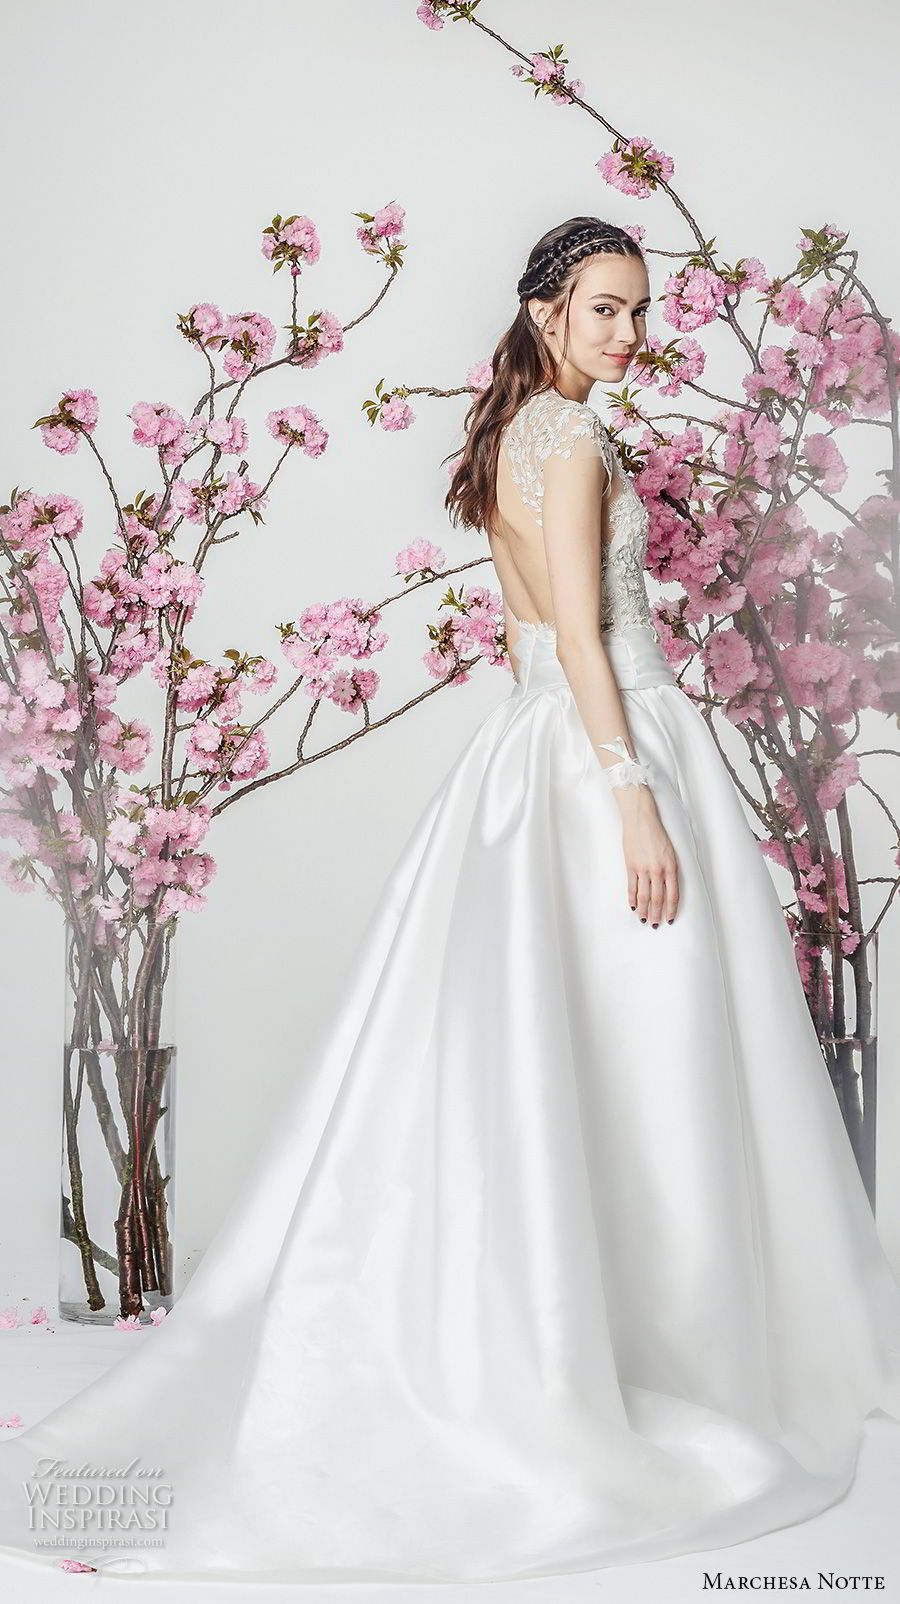 Marchesa notte spring wedding dresses marchesa chapel train